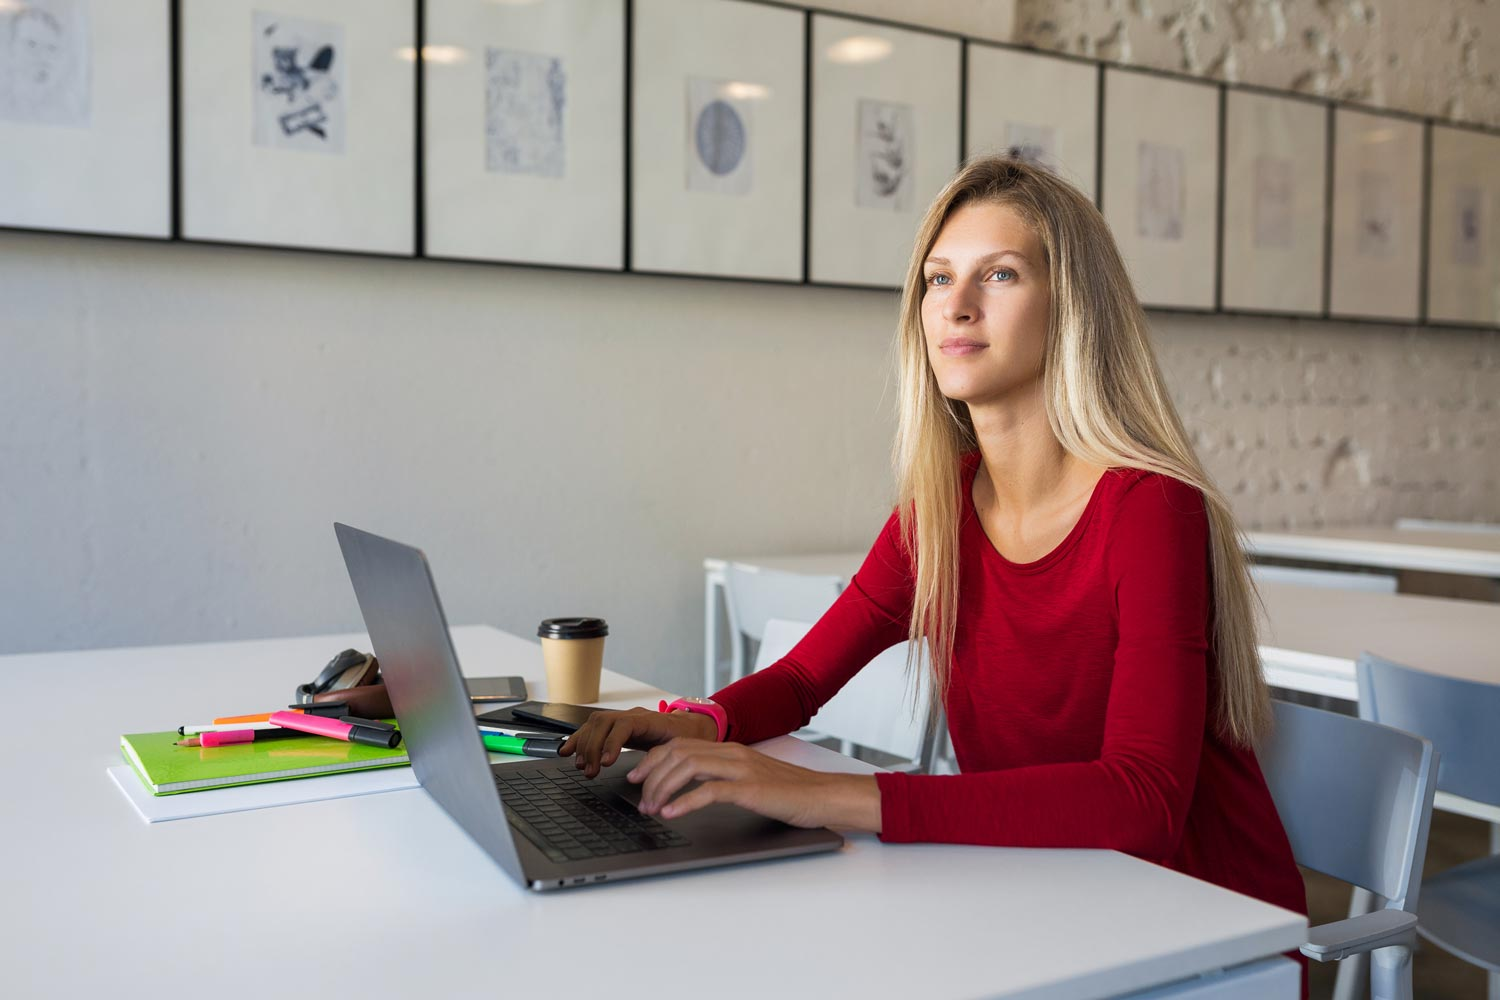 Female remote worker contemplating her job offers.